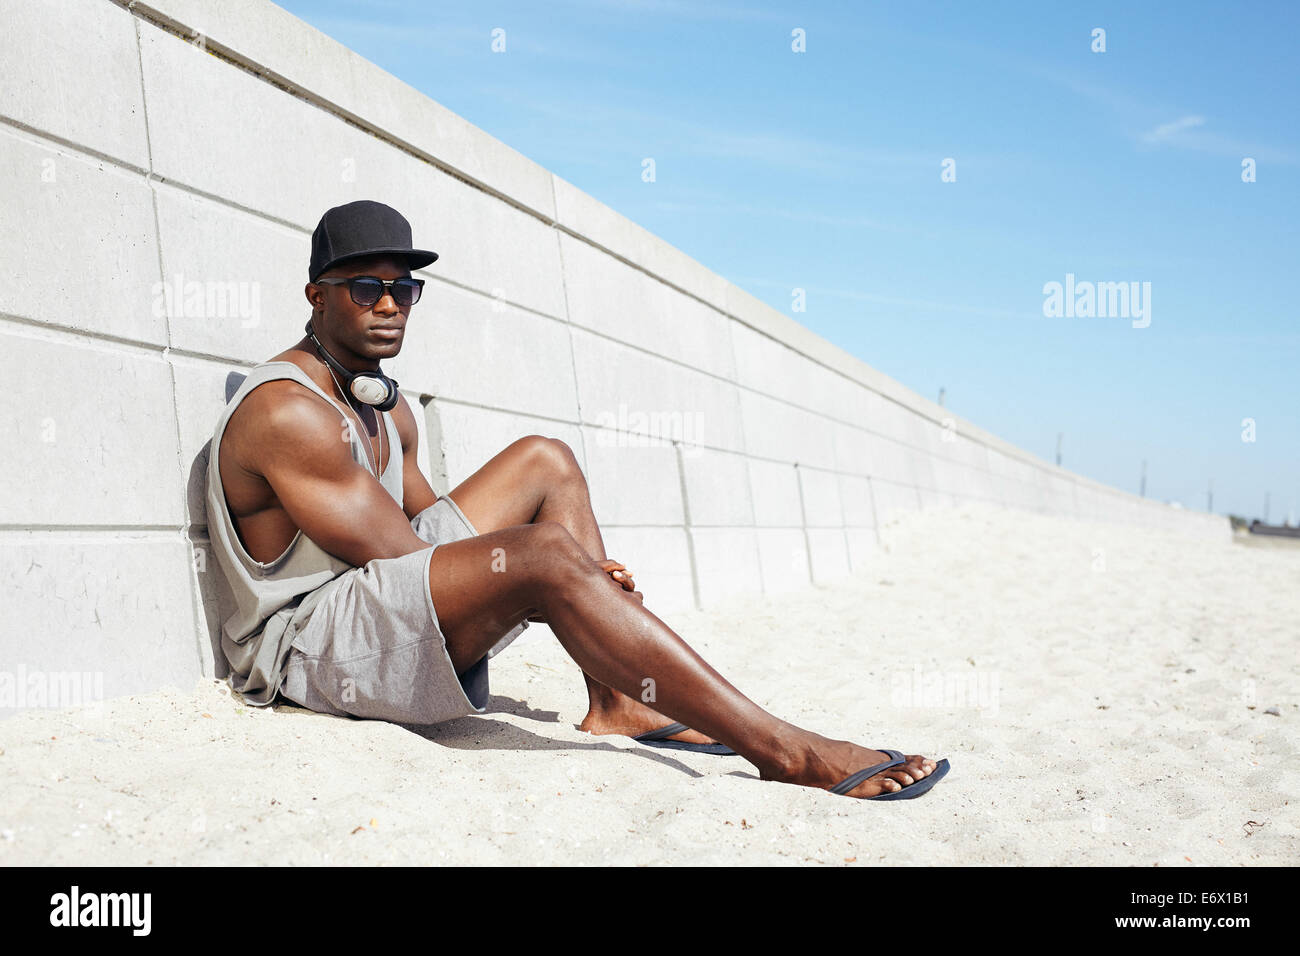 Handsome guy with headphones and sunglasses sitting on beach next to a wall. Muscular African-American male model - Stock Image